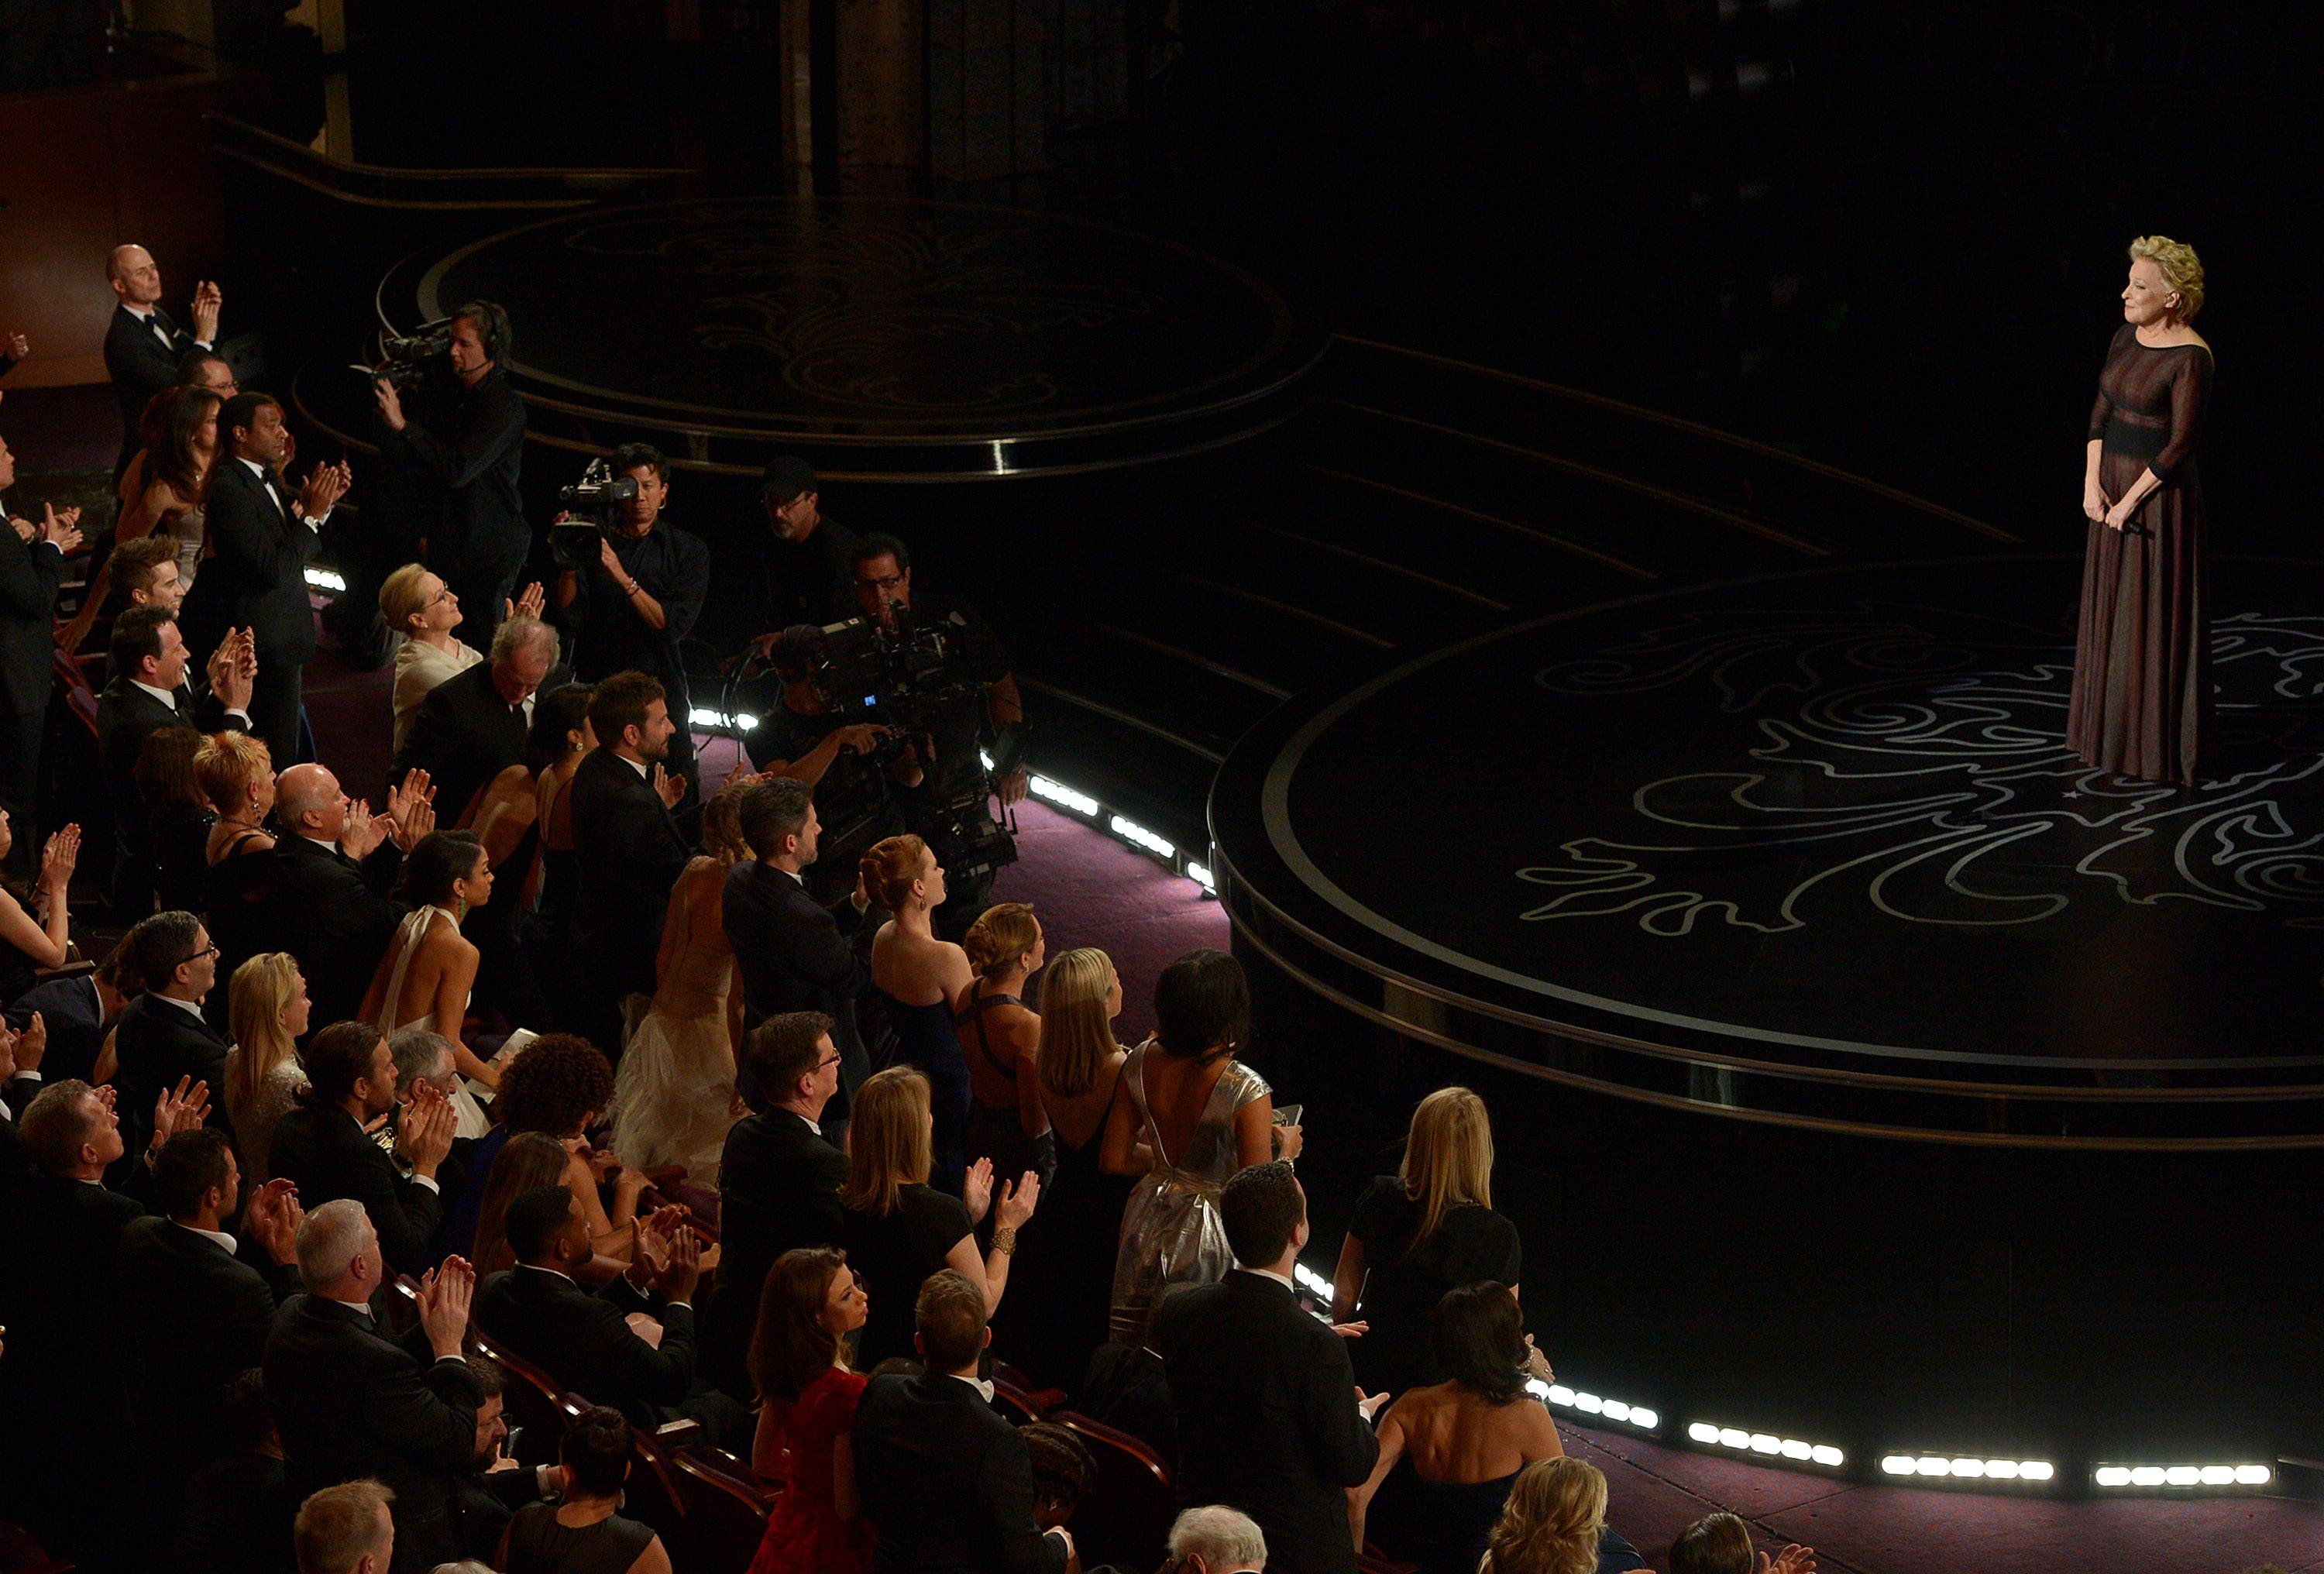 Bette Midler is applauded on stage after her performance during the In Memoriam segment at the Oscars.